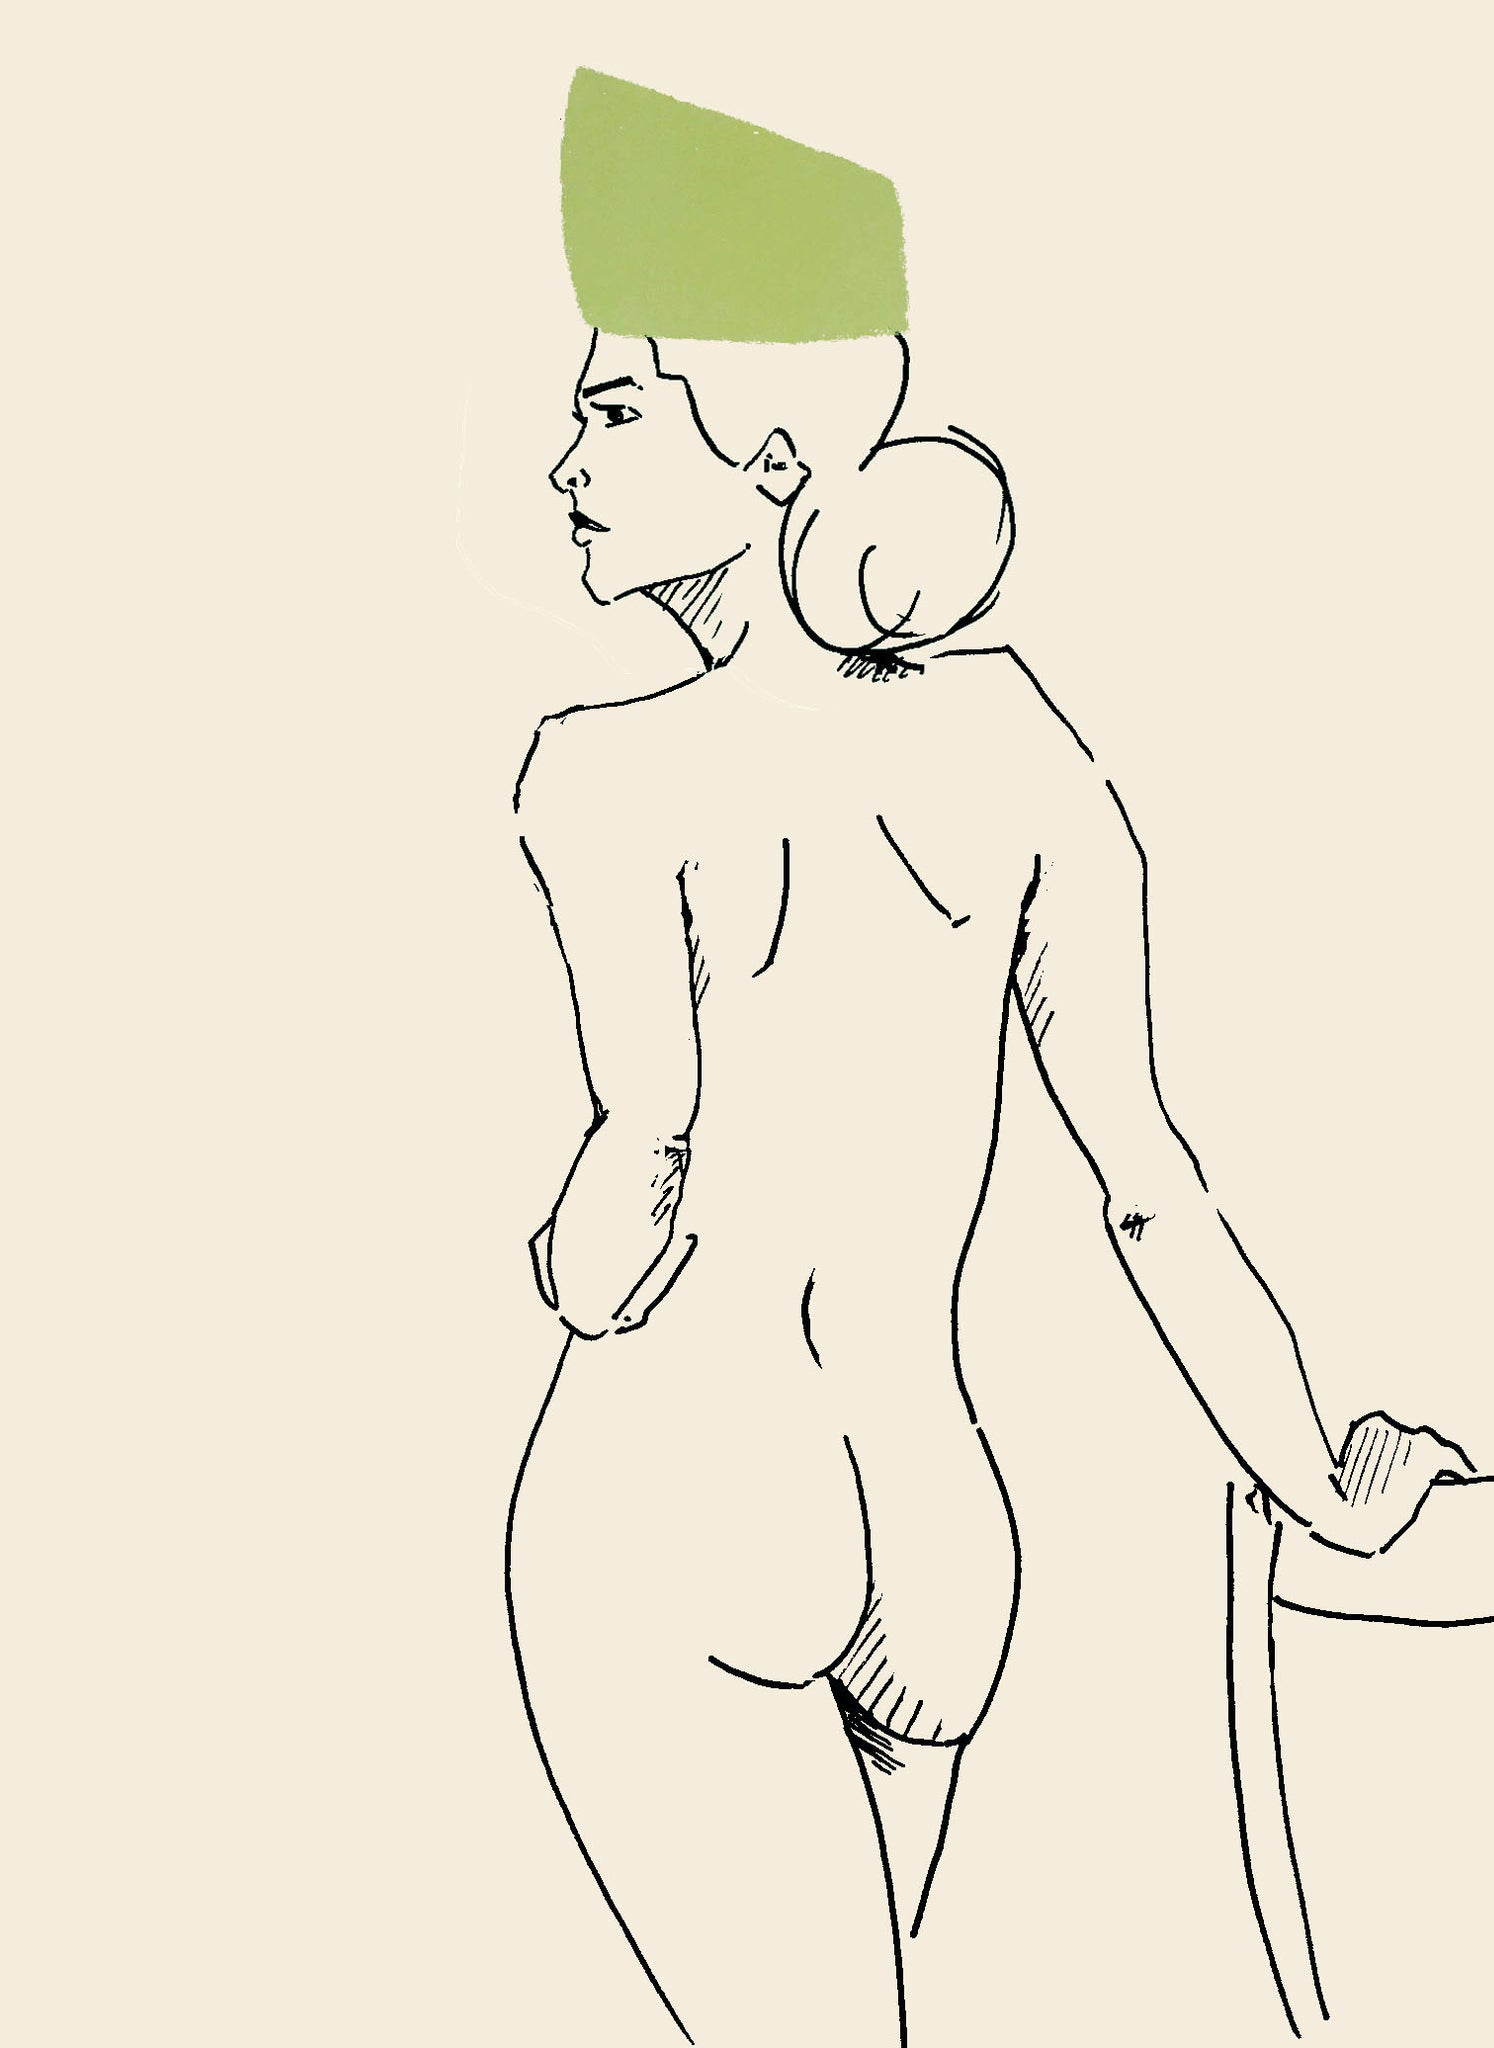 Signup Now For December's Open Figure Drawing Session